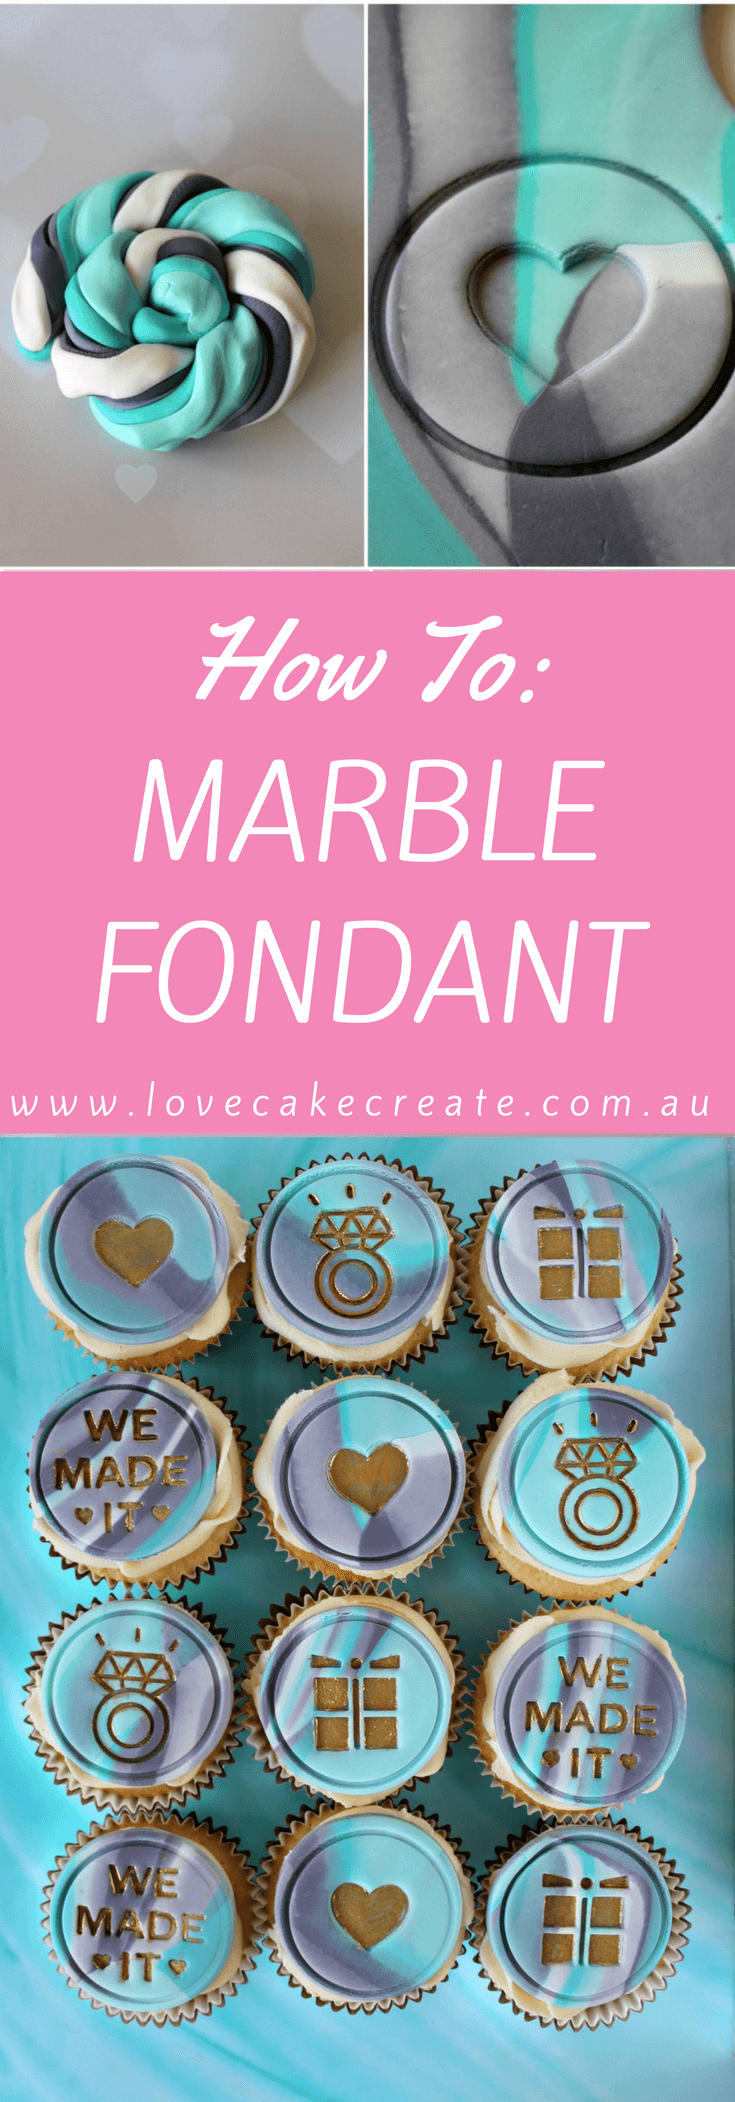 How to Marble Fondant - by Love Cake Create